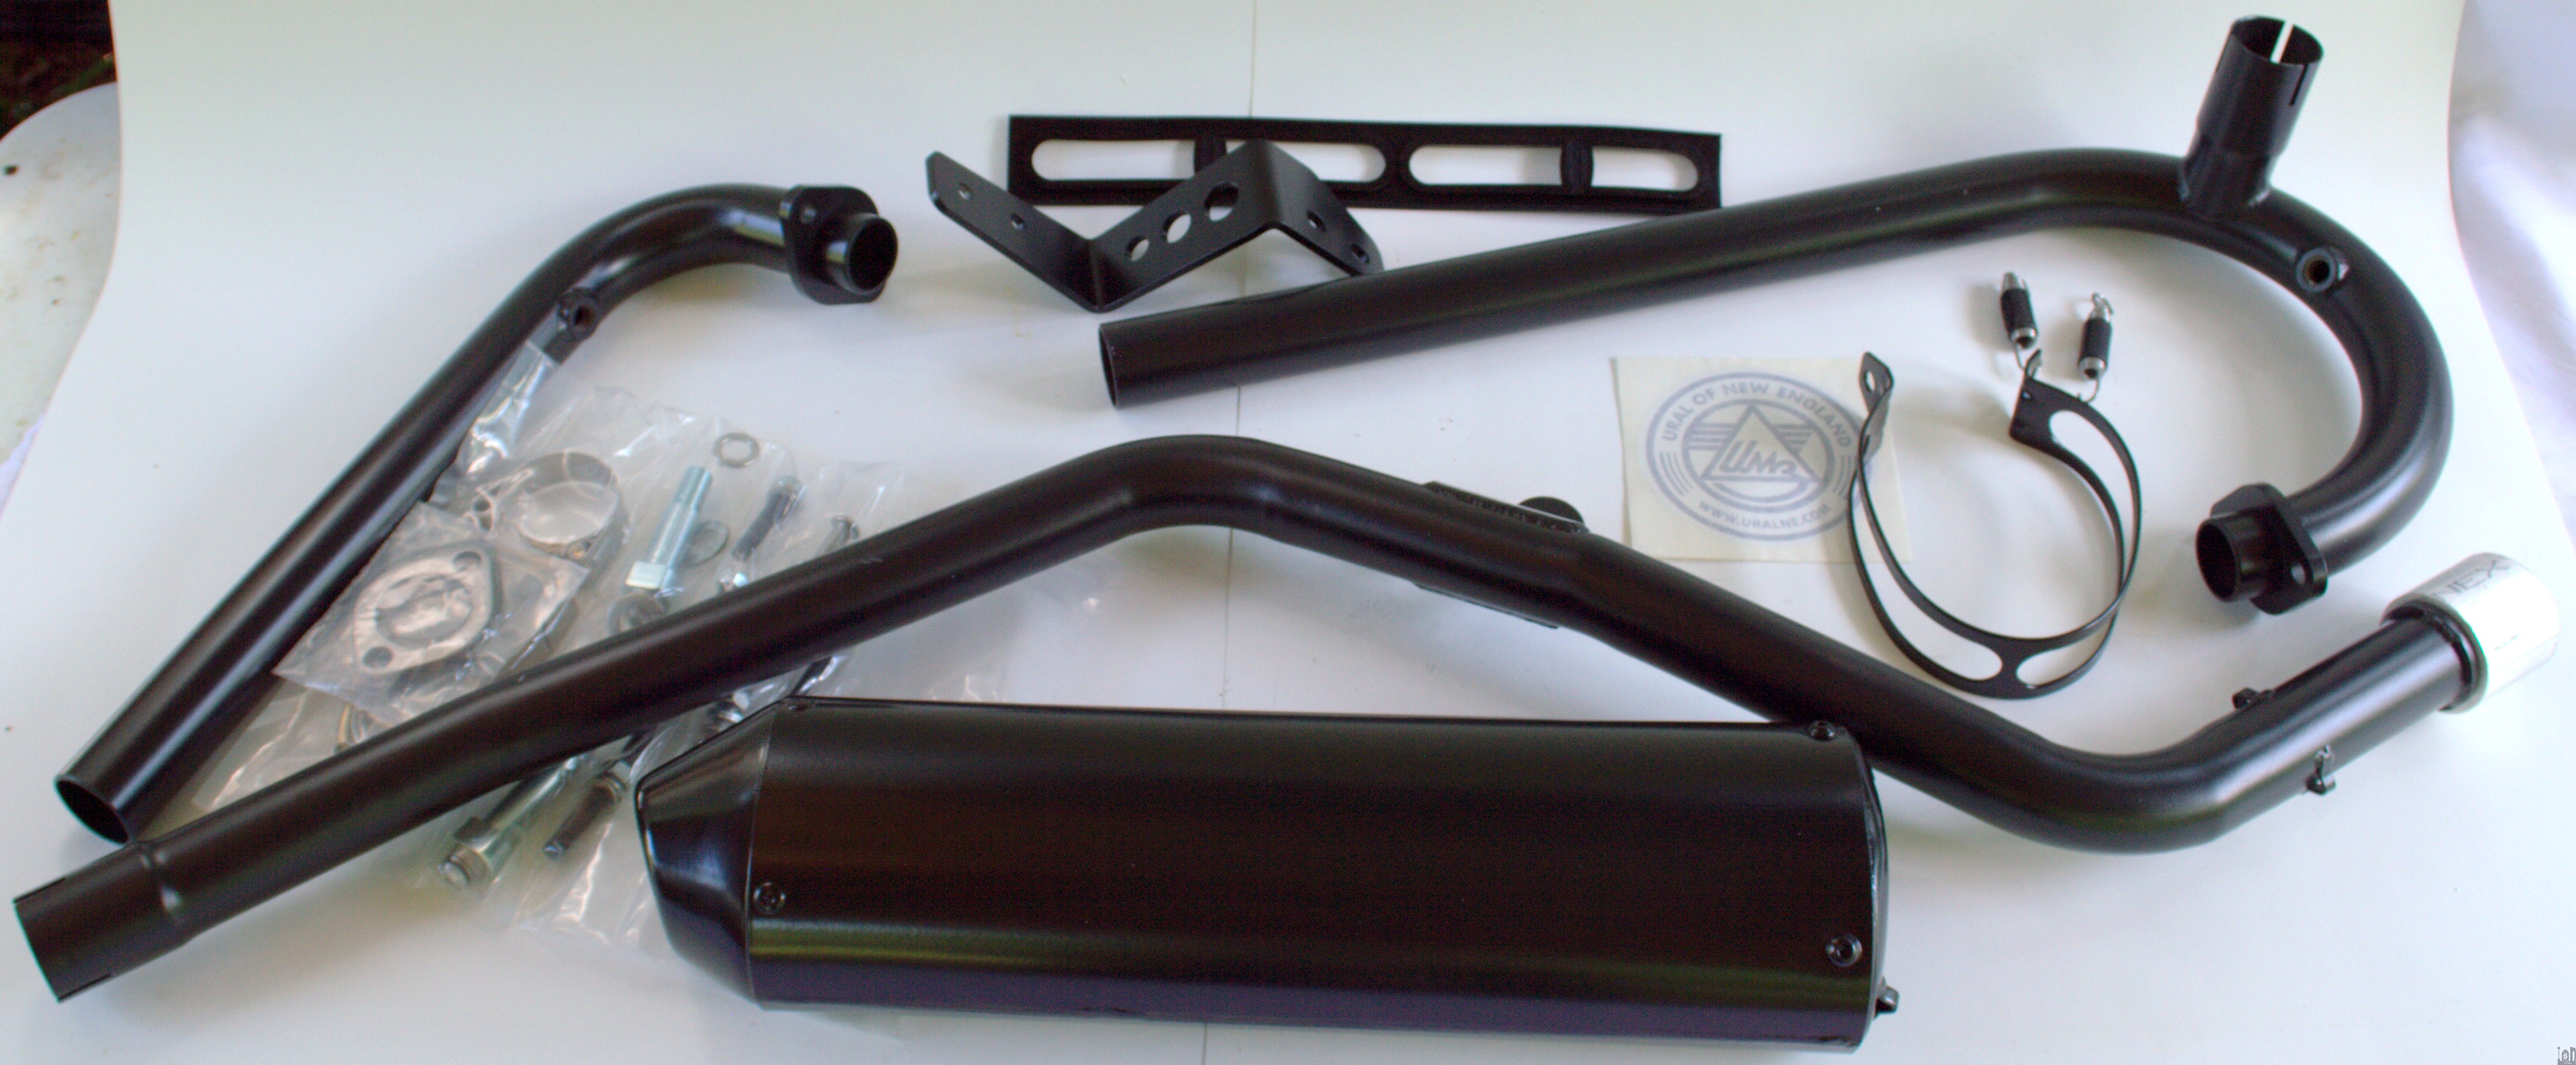 Oem Ural Motorcycle Parts 2 Into 1 High Mount Exhaust Black